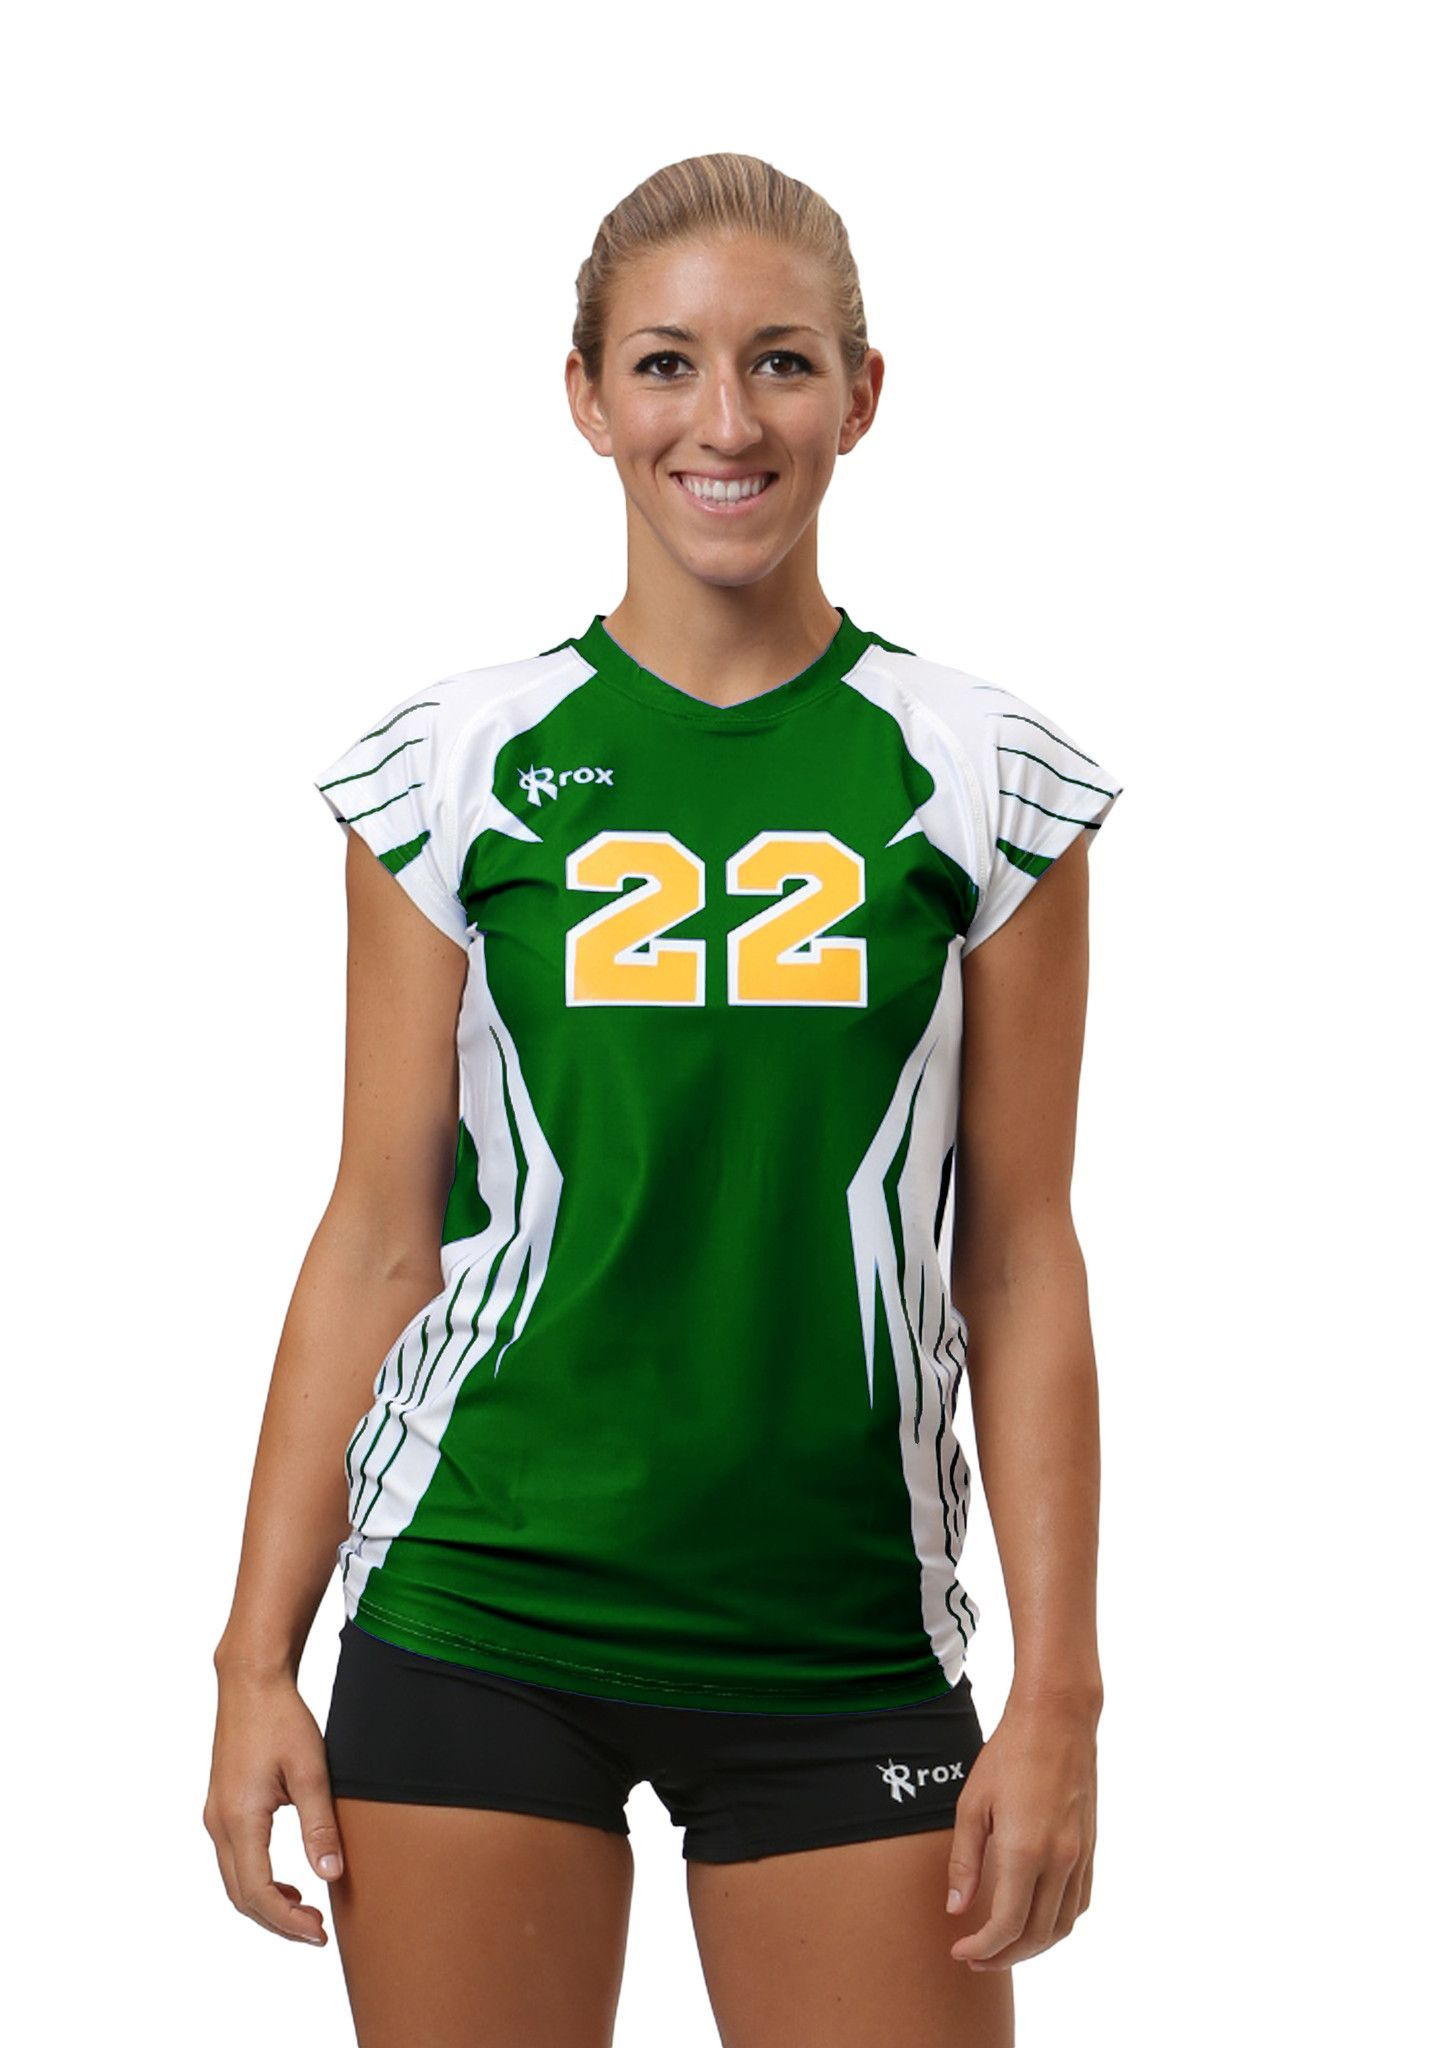 Boom Stock Cap Sleeve 1126 8101 Forest White Cap Sleeves Women Volleyball Volleyball Jerseys